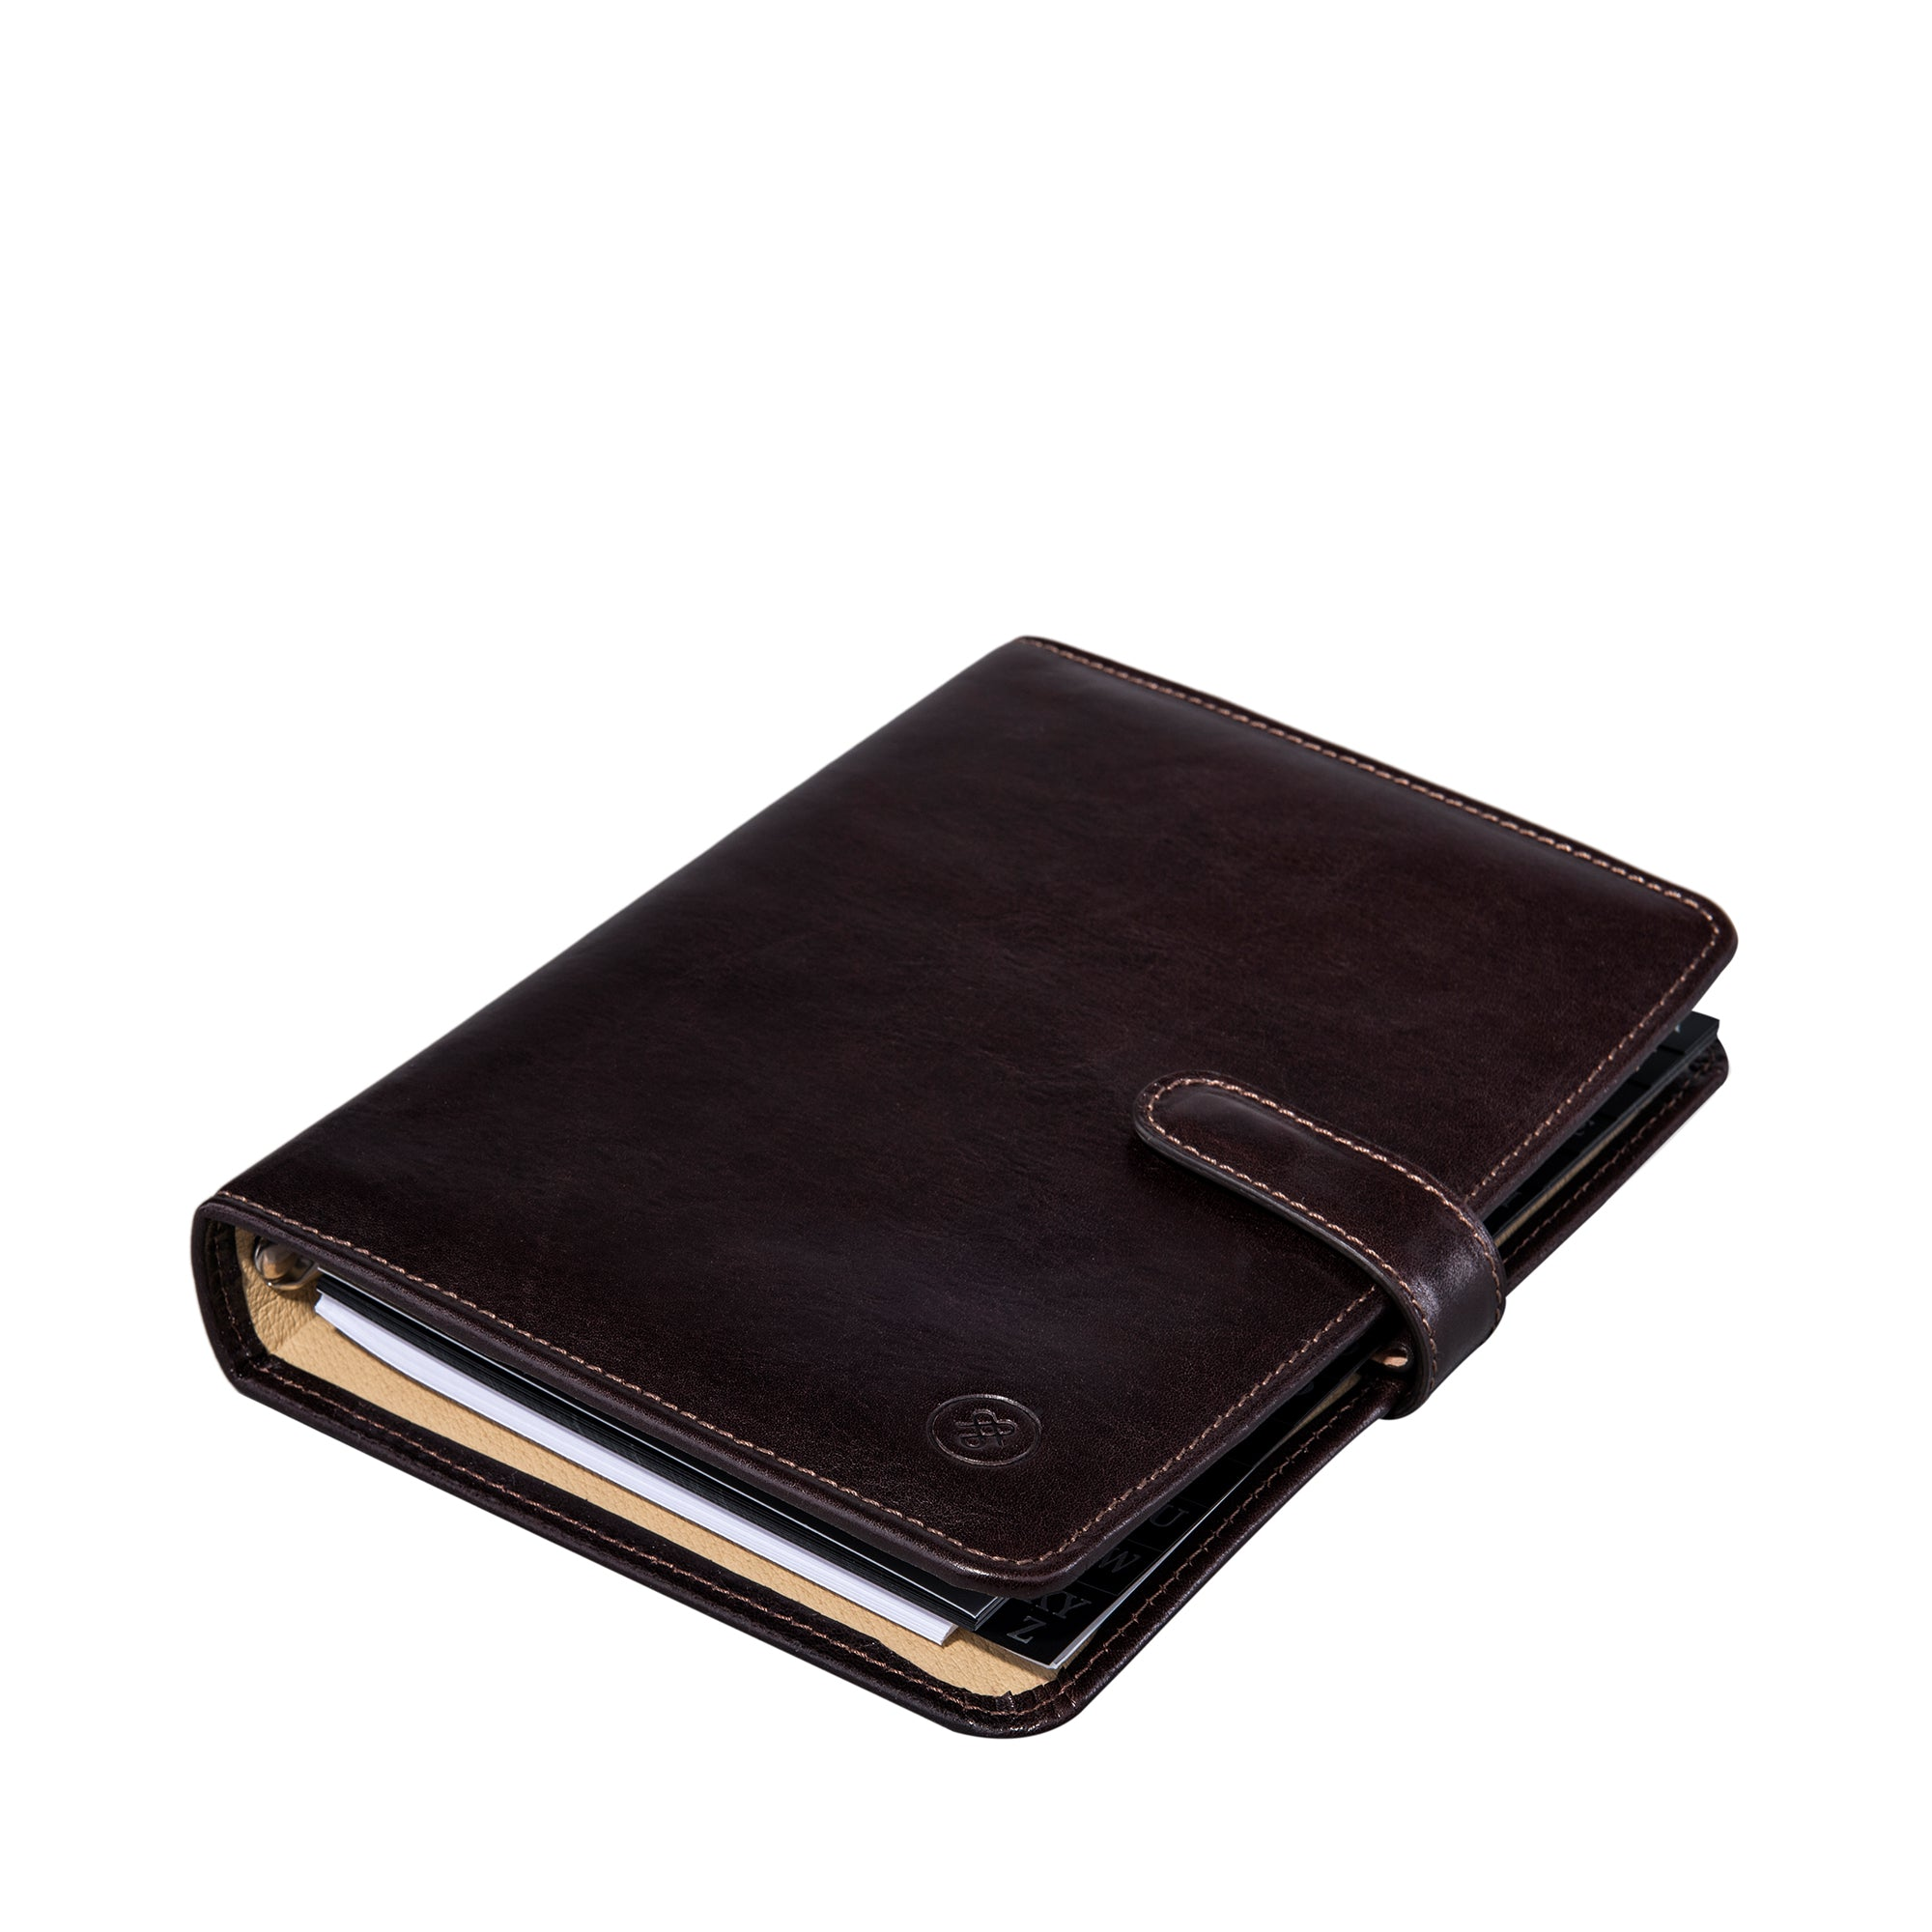 Image 3 of the Chocolate Leather Address book